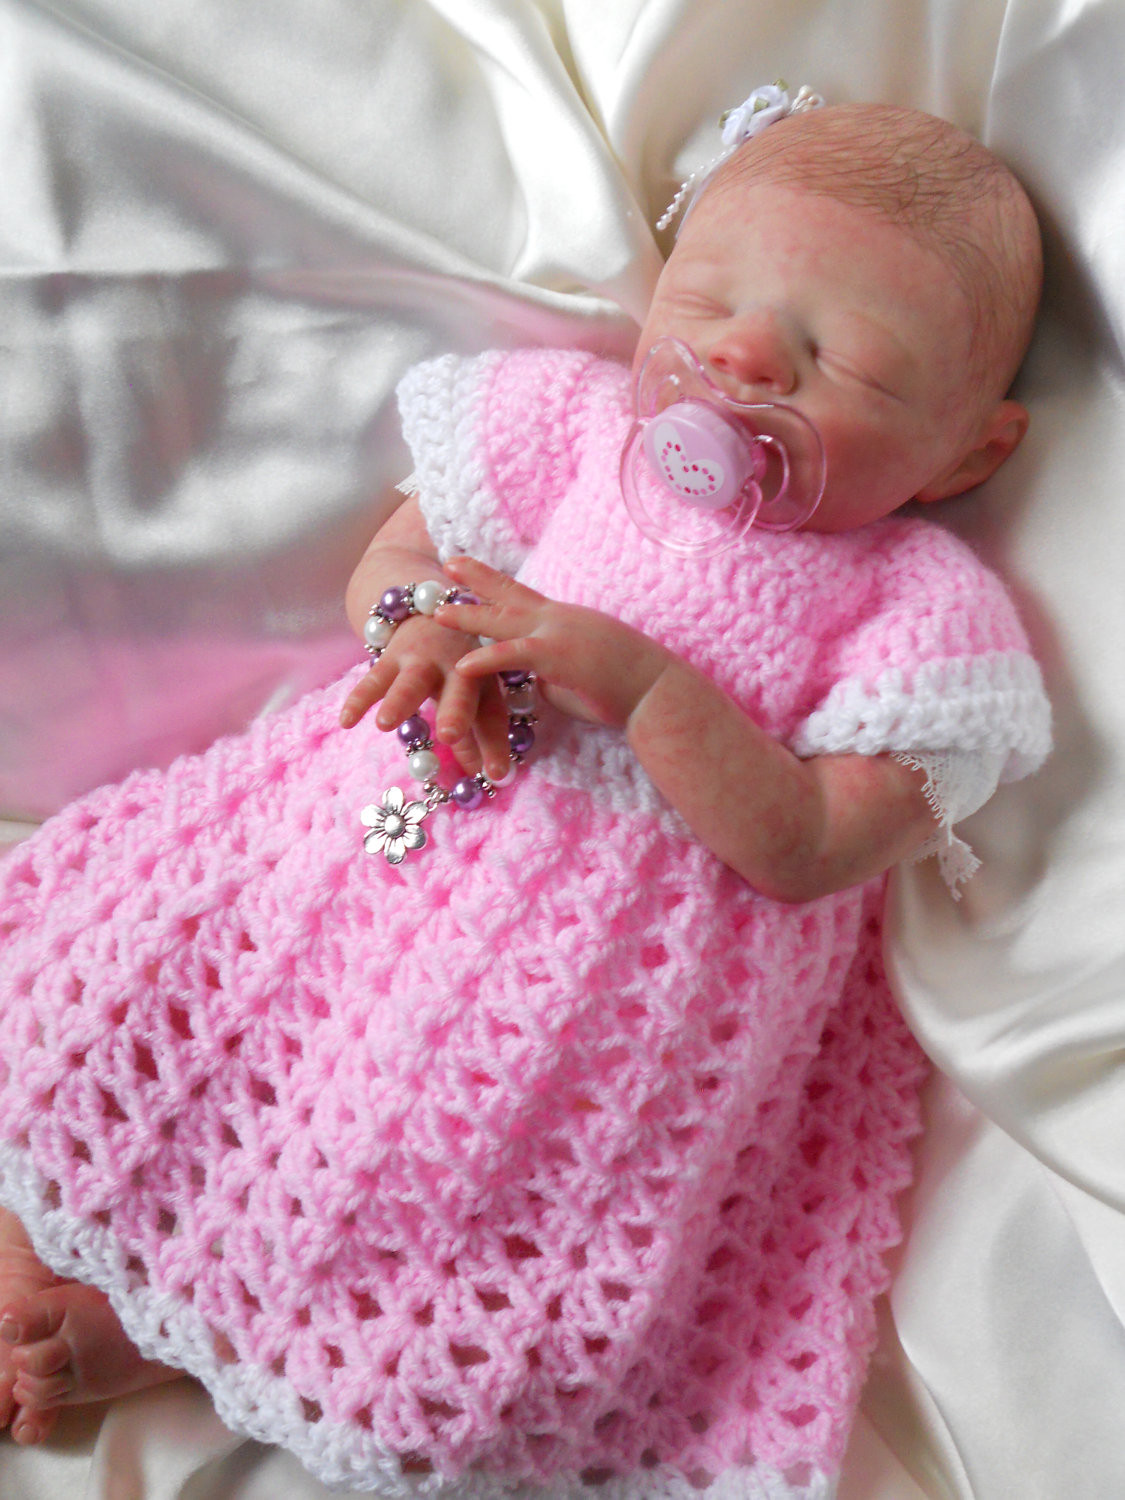 Free Crochet Patterns Baby Clothes Best Of Free Crochet Baby Doll Clothes Patterns Of Awesome 40 Images Free Crochet Patterns Baby Clothes